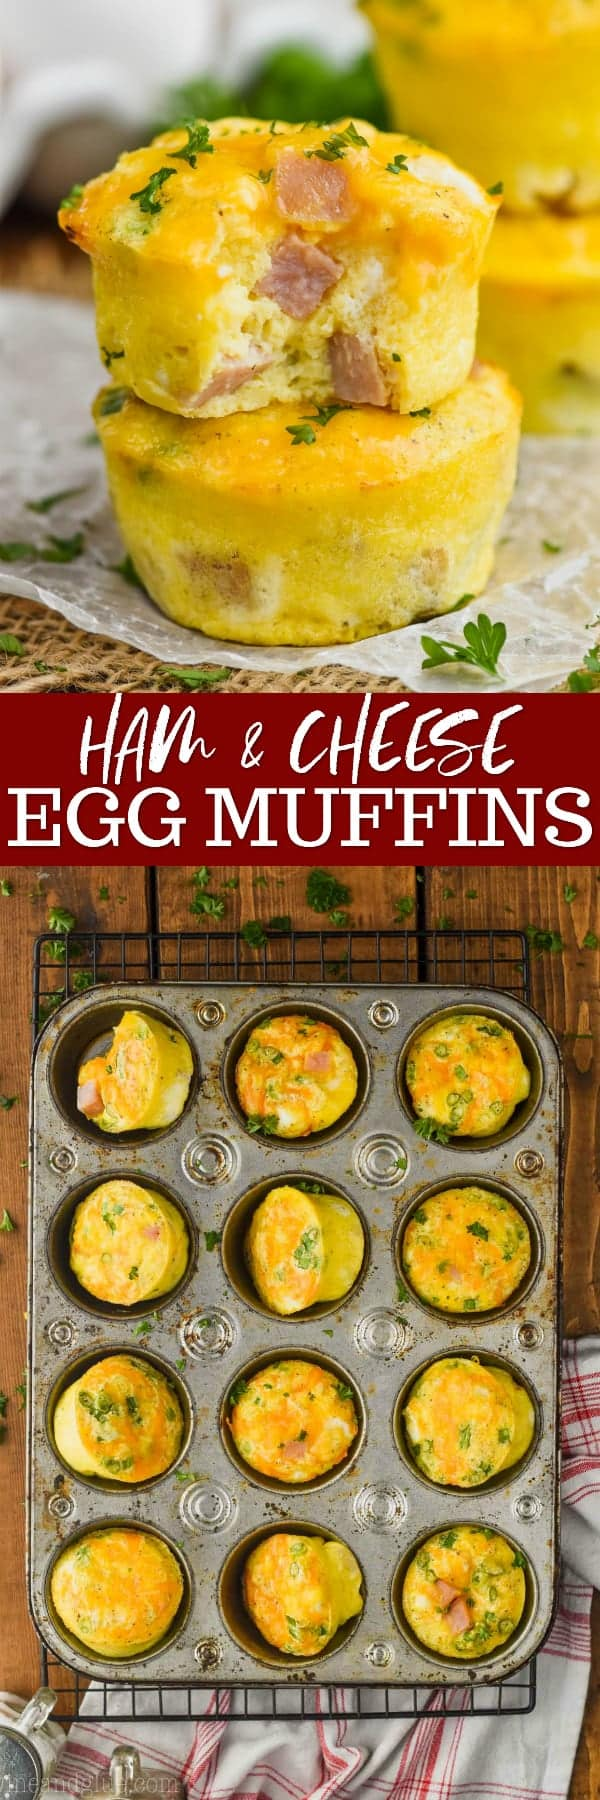 collage of photos of egg muffins